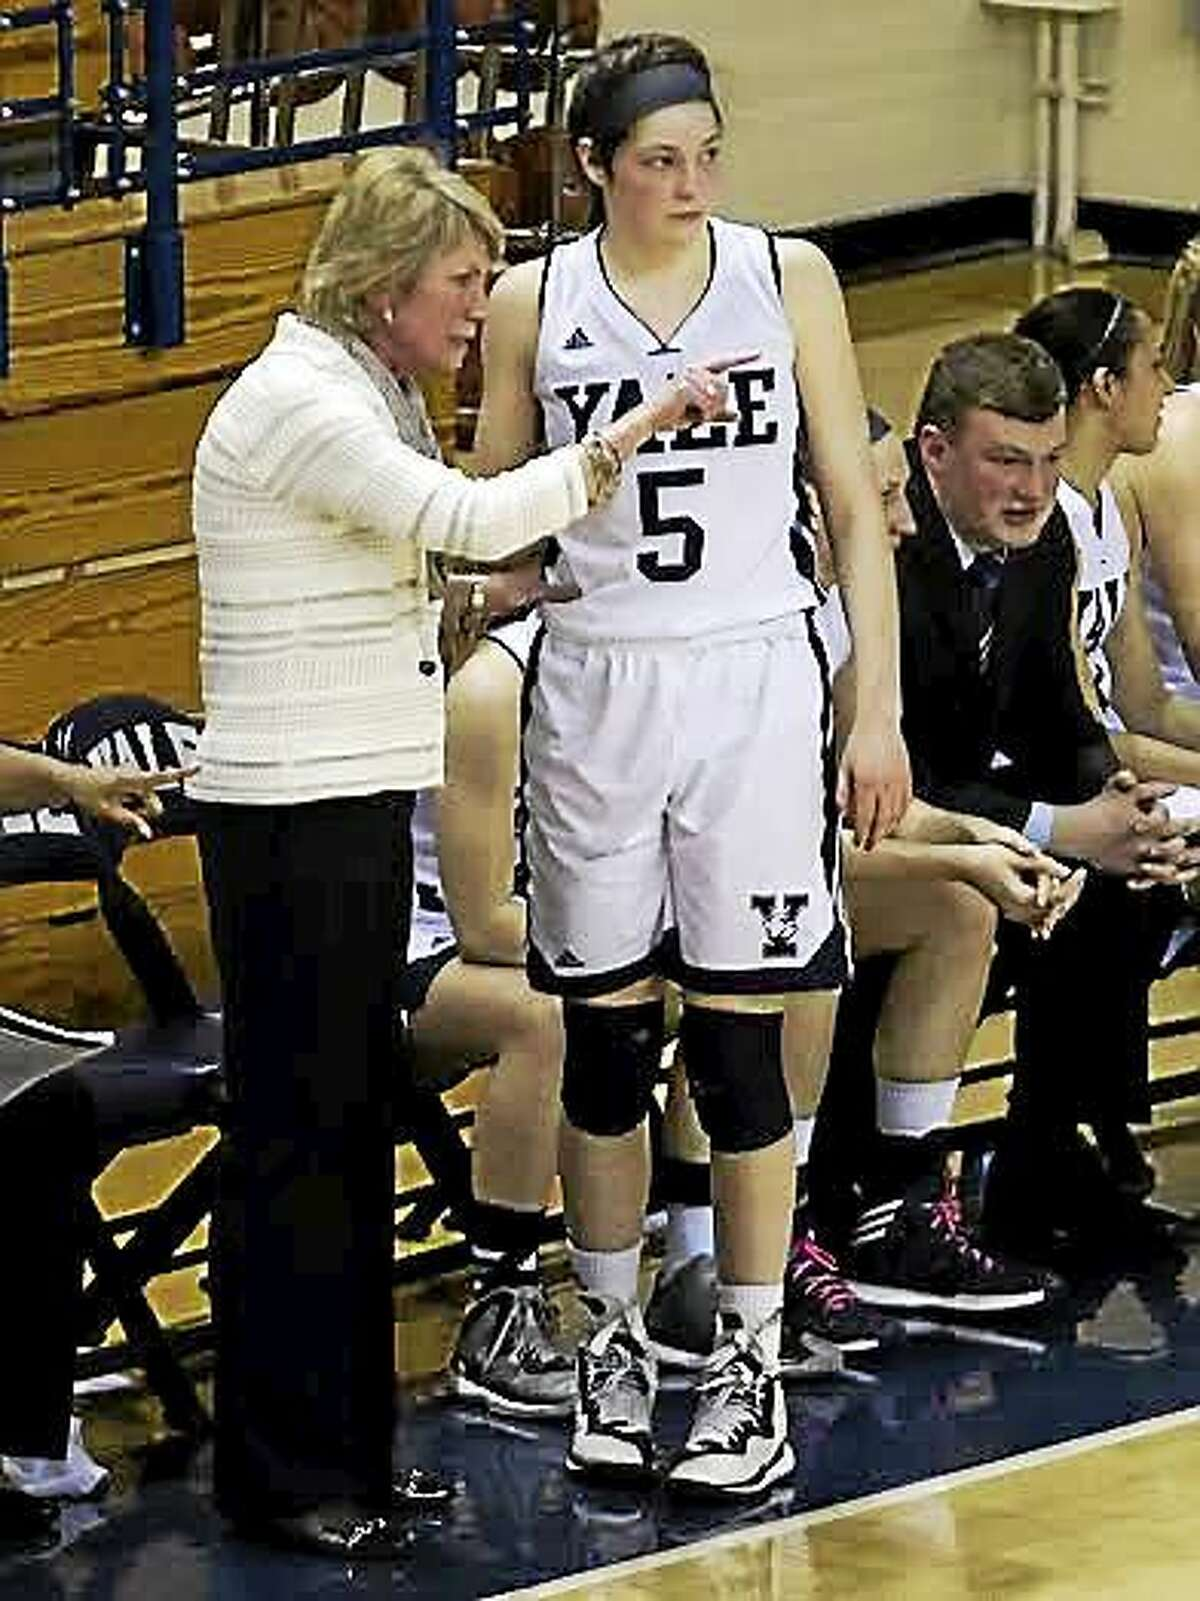 Katie Werner and Yale will take their shot against the lone unbeaten team in the nation, Princeton, on Saturday night in New Haven.